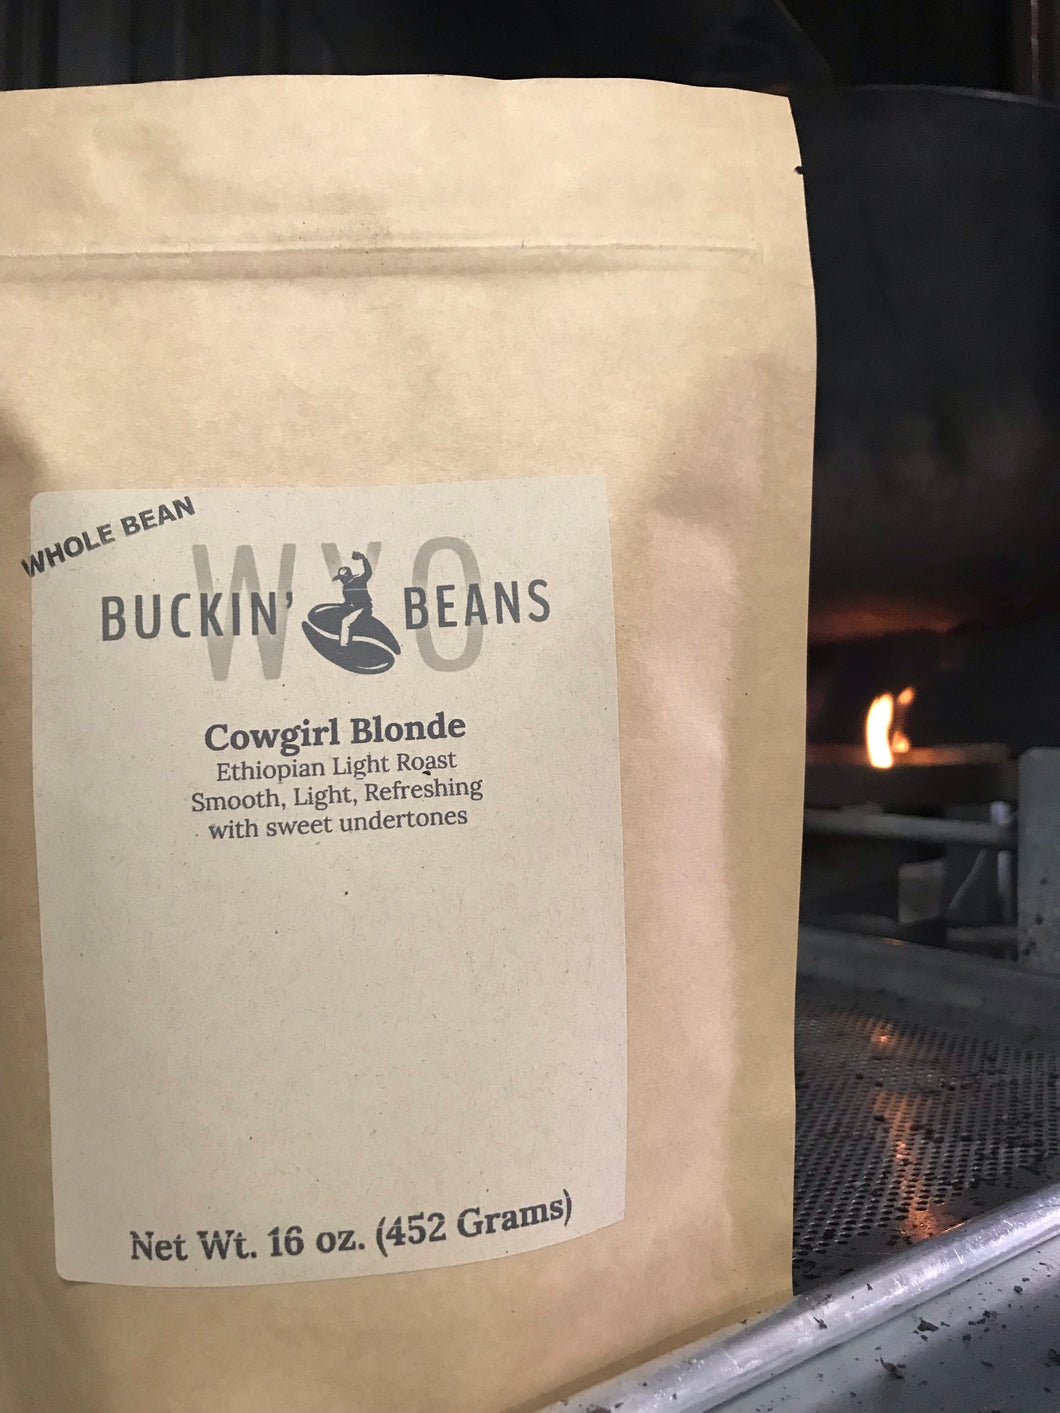 Cowgirl Blonde (Light Roast) - WYO Buckin' Beans